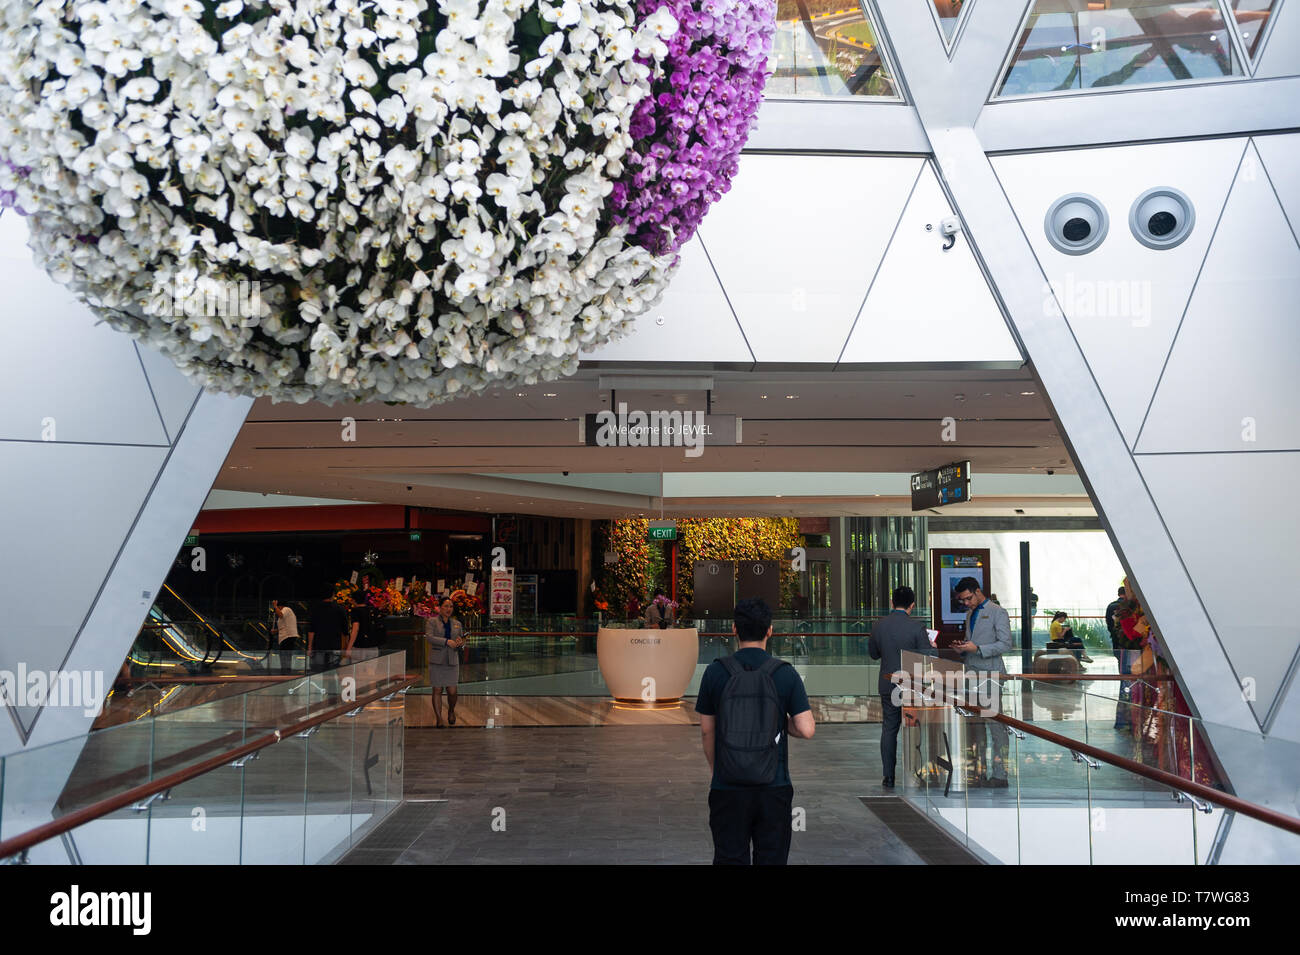 18.04.2019, Singapore, Republic of Singapore, Asia - People inside the new Jewel Terminal at Changi Airport, designed by Moshe Safdie Architects. - Stock Image